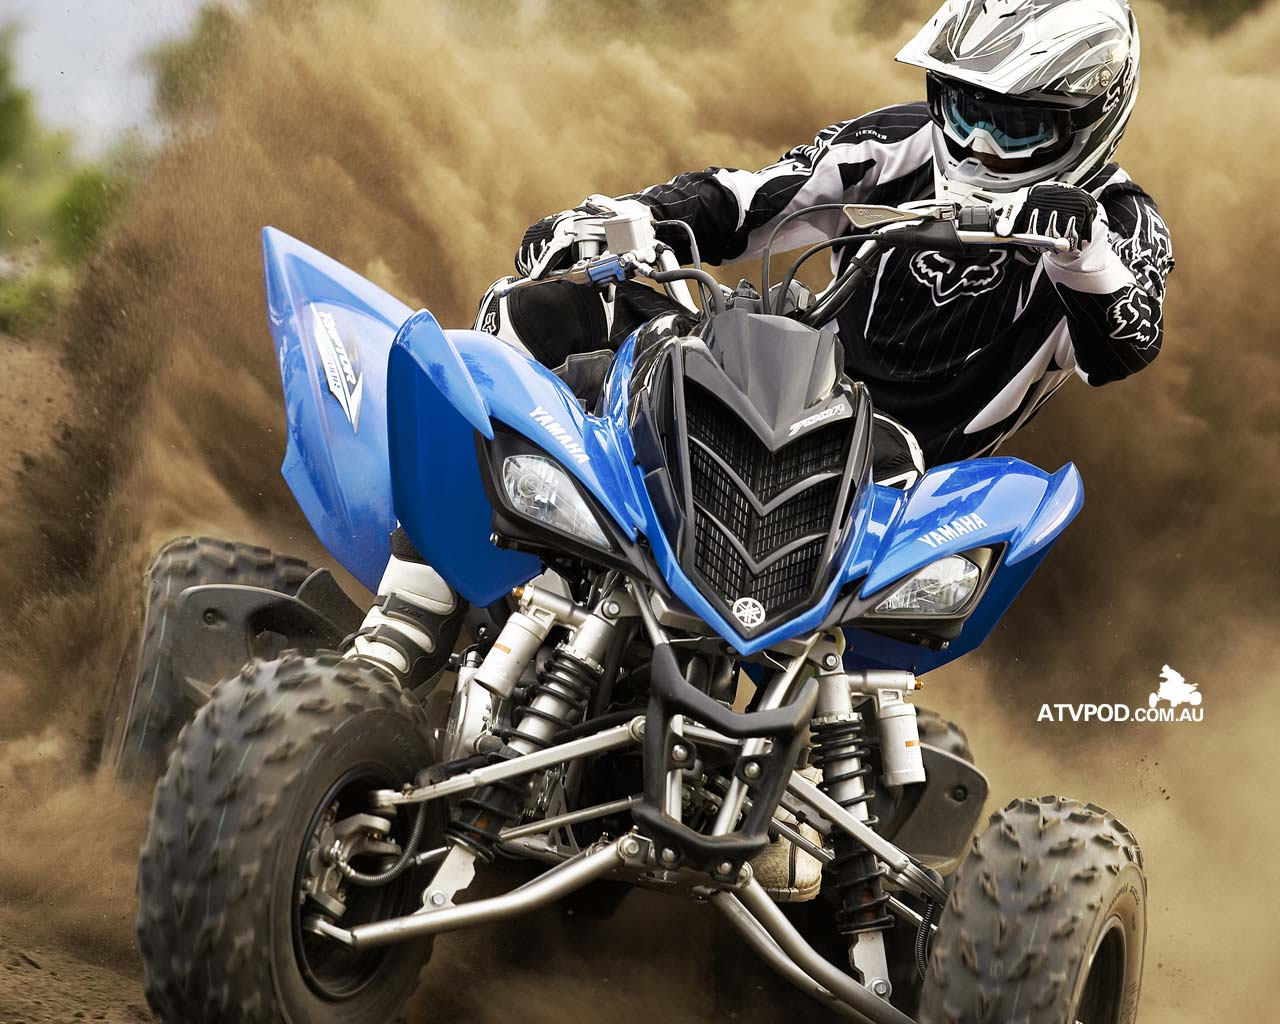 Yamaha Atv Wallpaper 7604 Hd Wallpapers in Bikes   Imagescicom 1280x1024